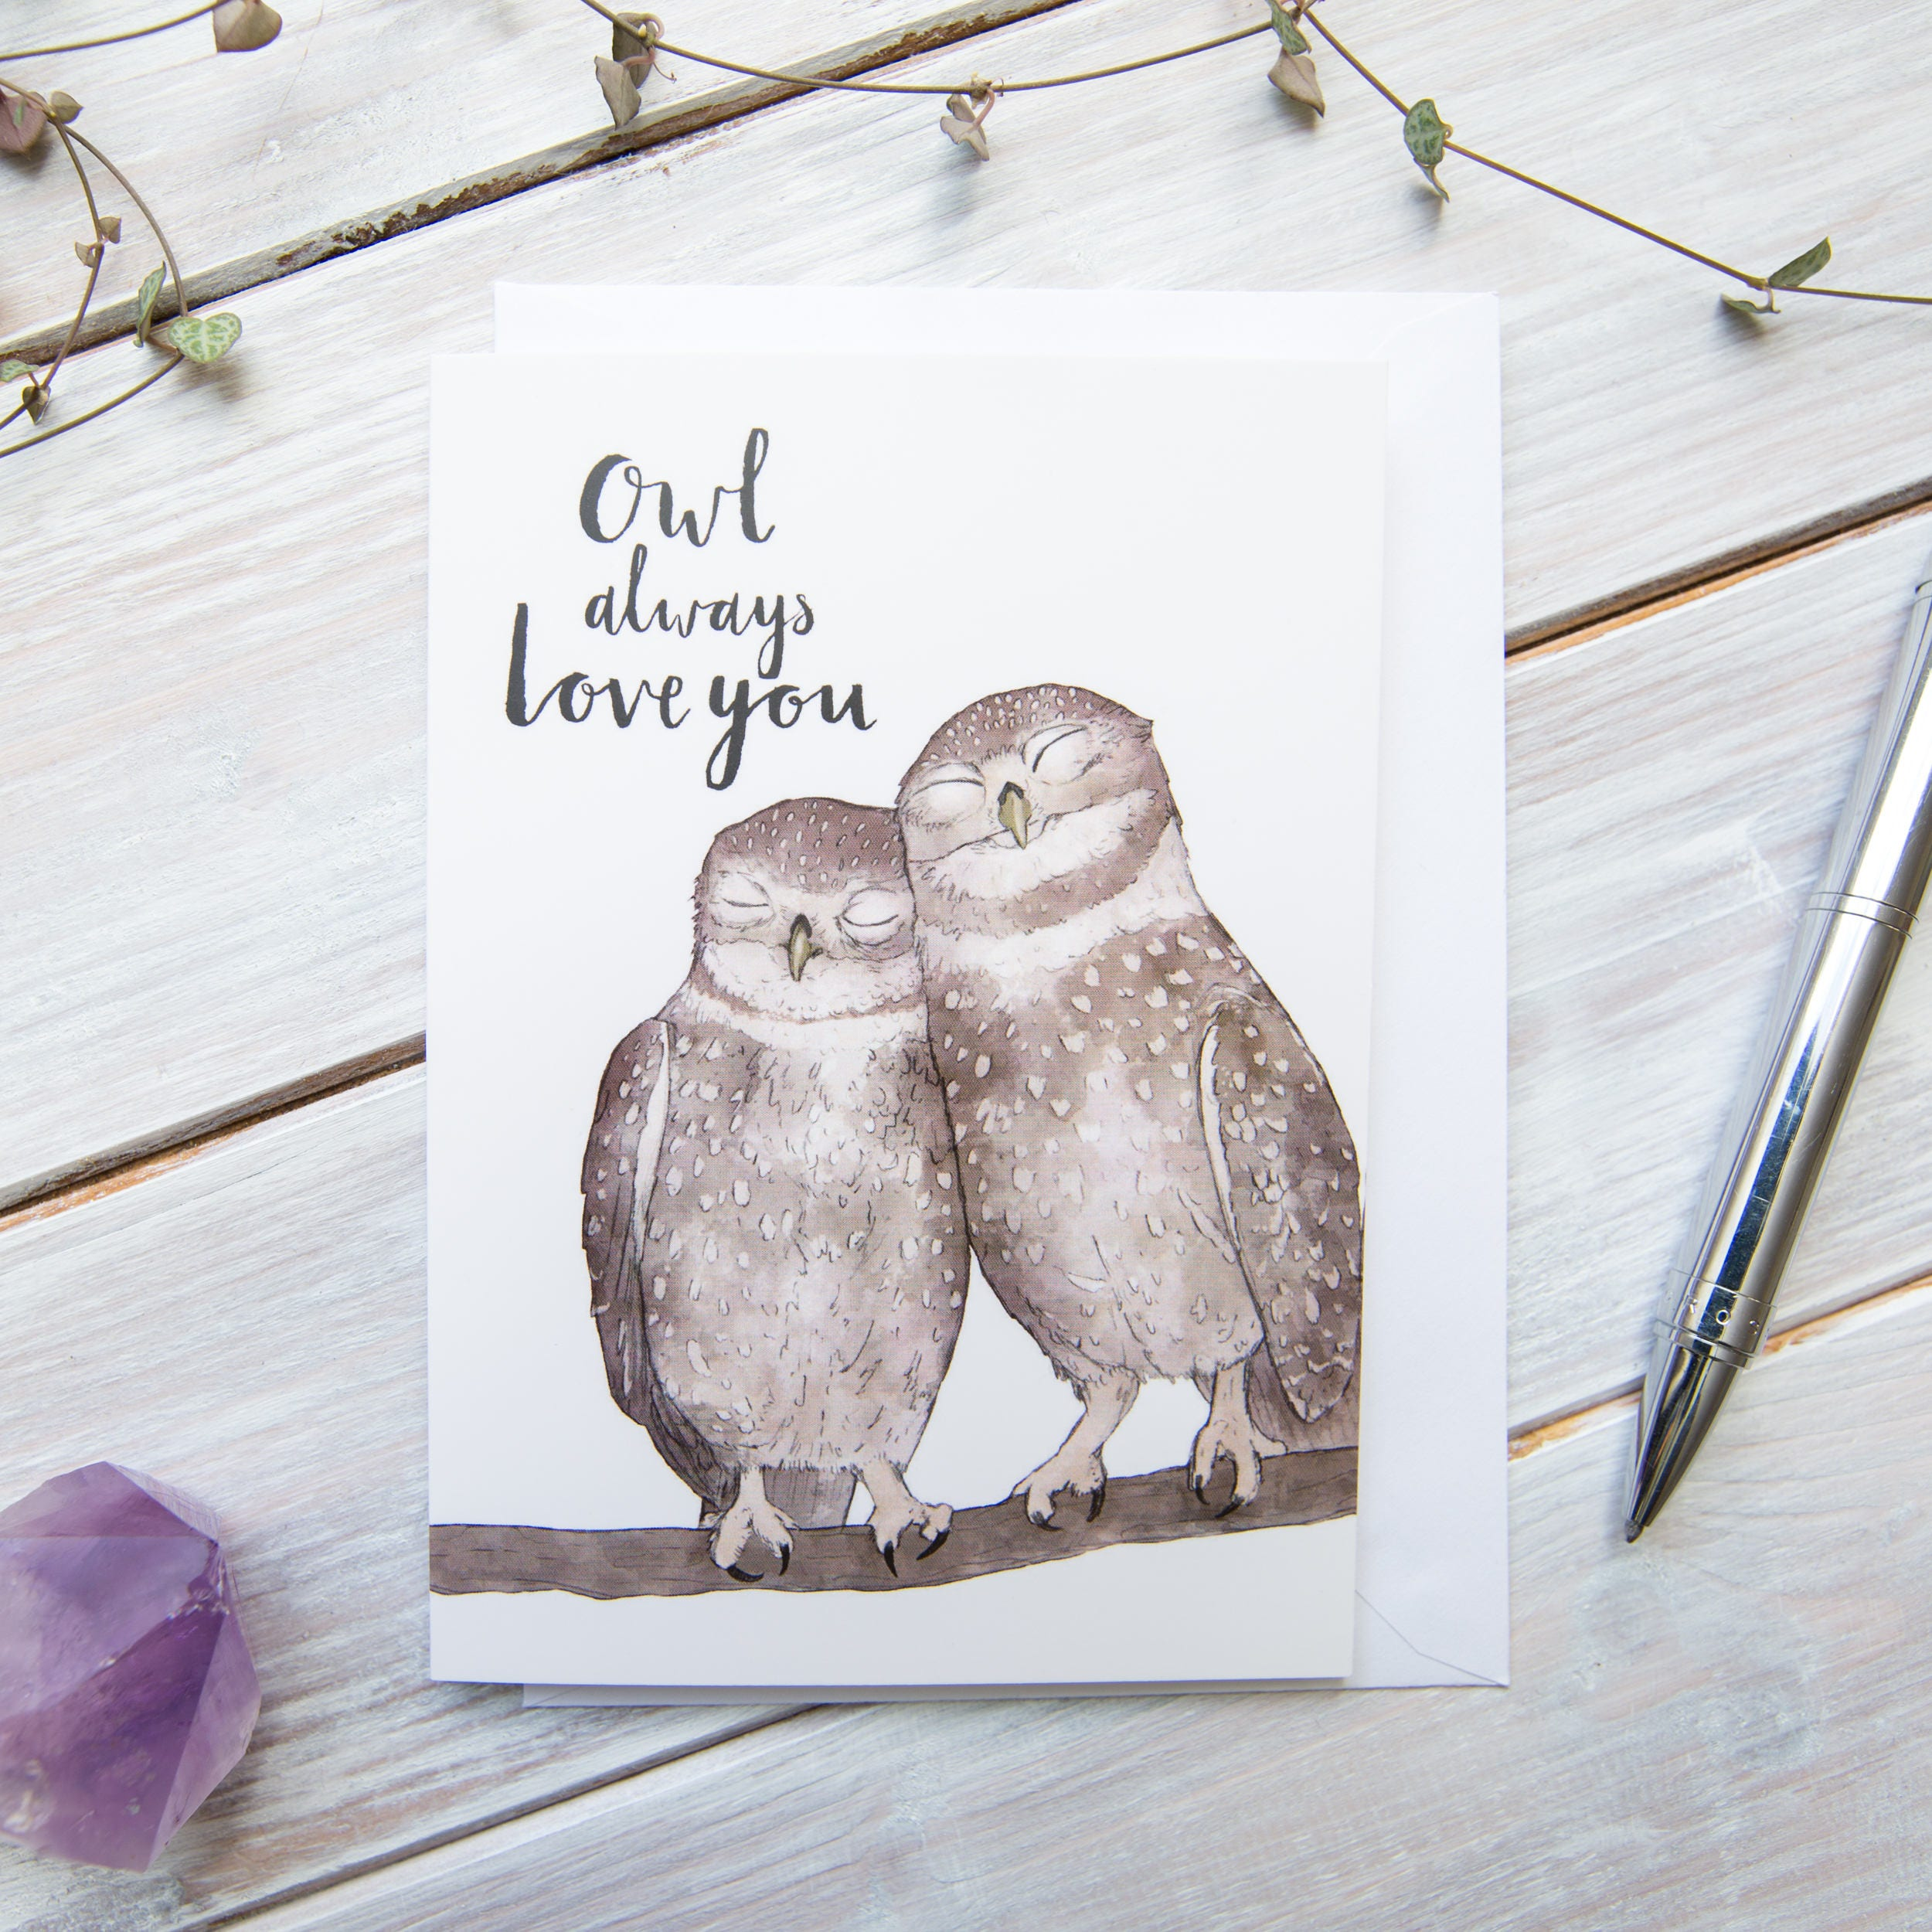 Owl Always Love You Little Owl Greetings Card | Etsy